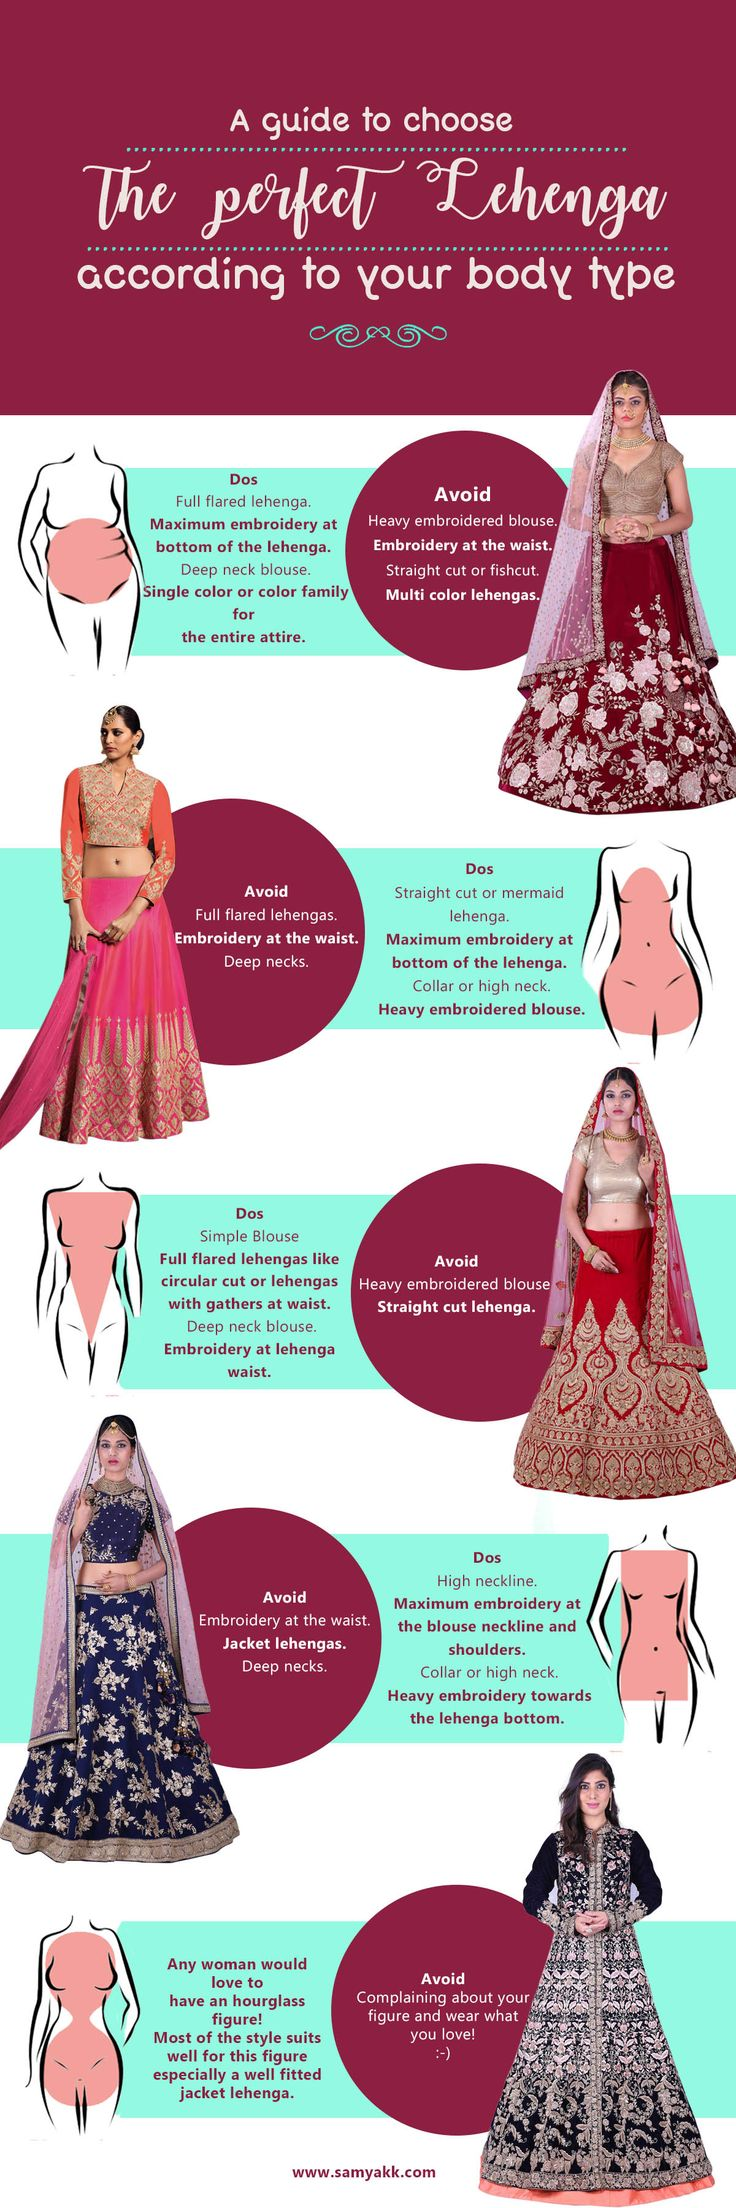 #Samyakk presents you the detailed guide to choose a perfect #wedding #lehenga according to your #body type. Buy lehengas #online at www.samyakk.com